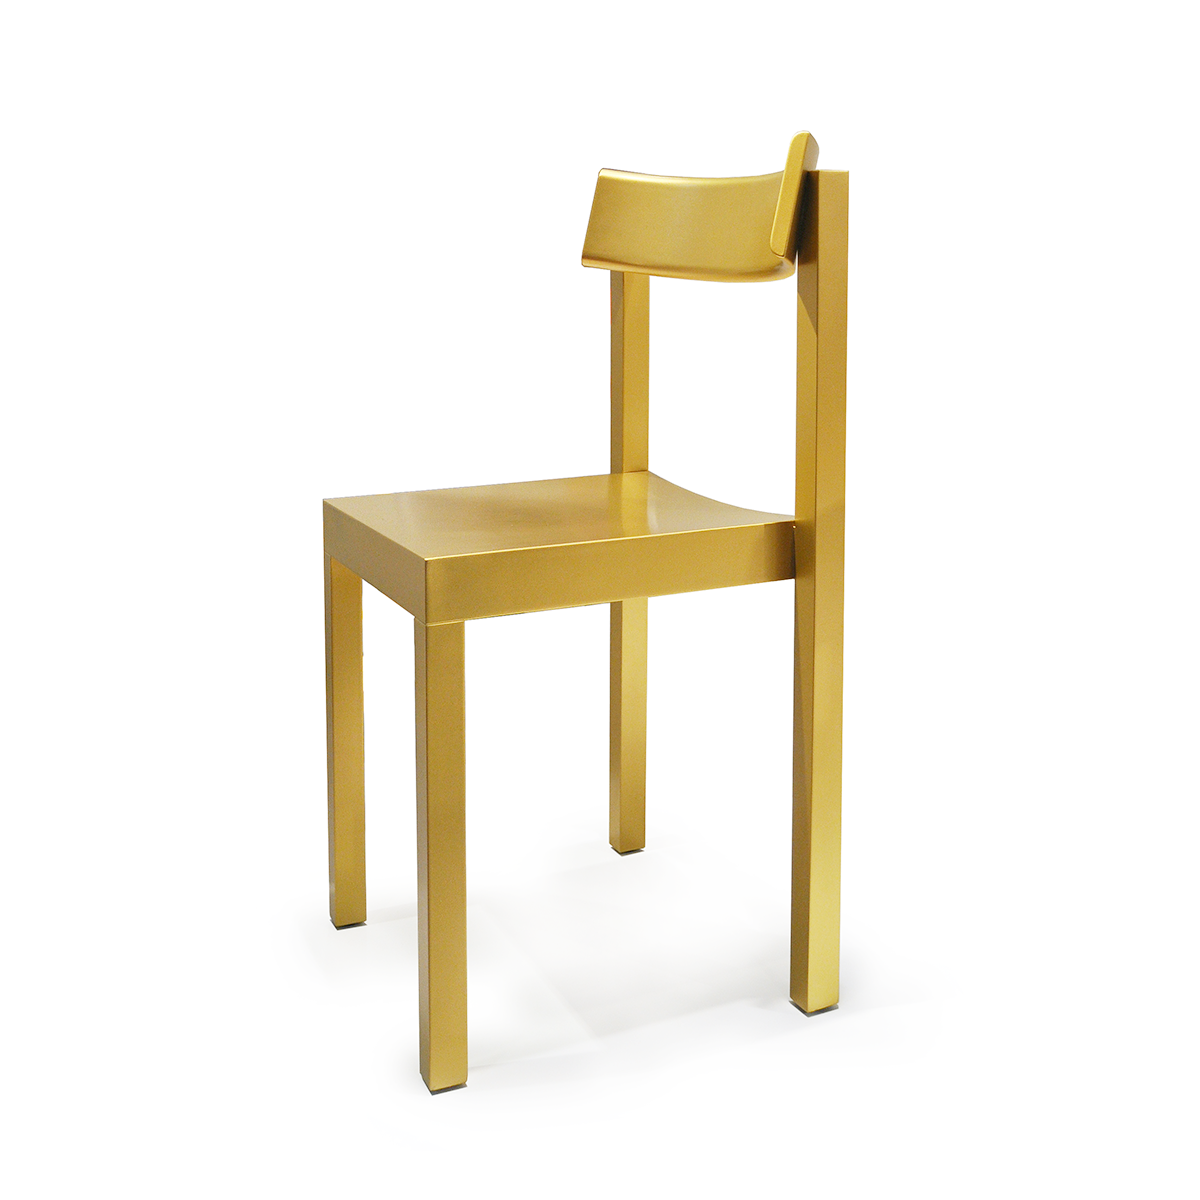 Mattiazzi MC14 Primo Wooden Dining Chair Special Edition in Gold 頂尖系列 實木 單椅 / 餐椅 - 金色特別版